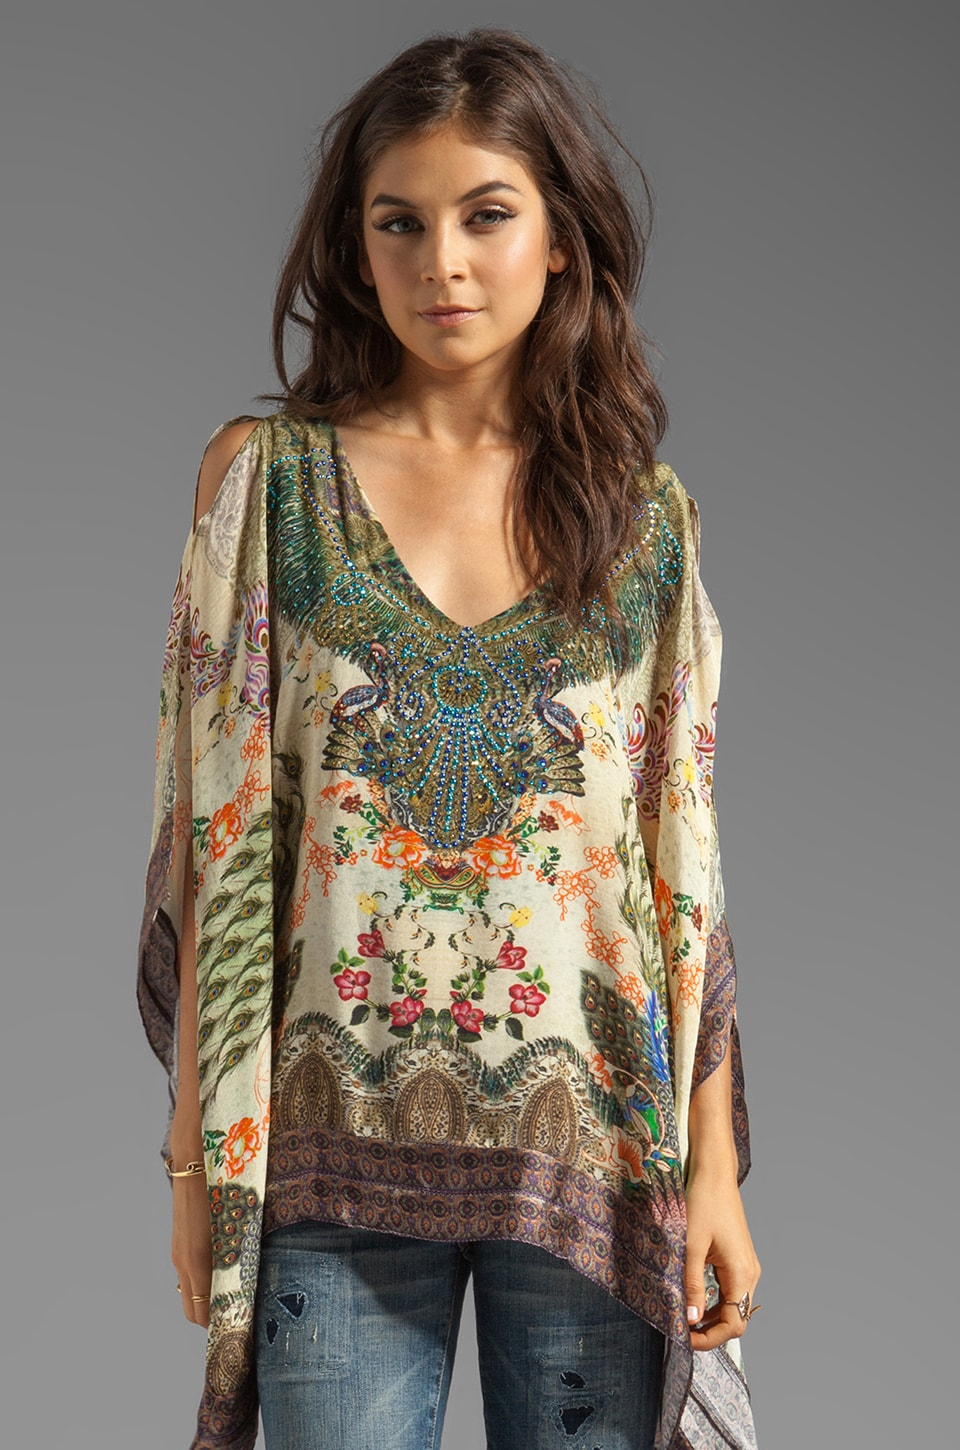 Camilla Poetic License V Neck Top in A Daydream